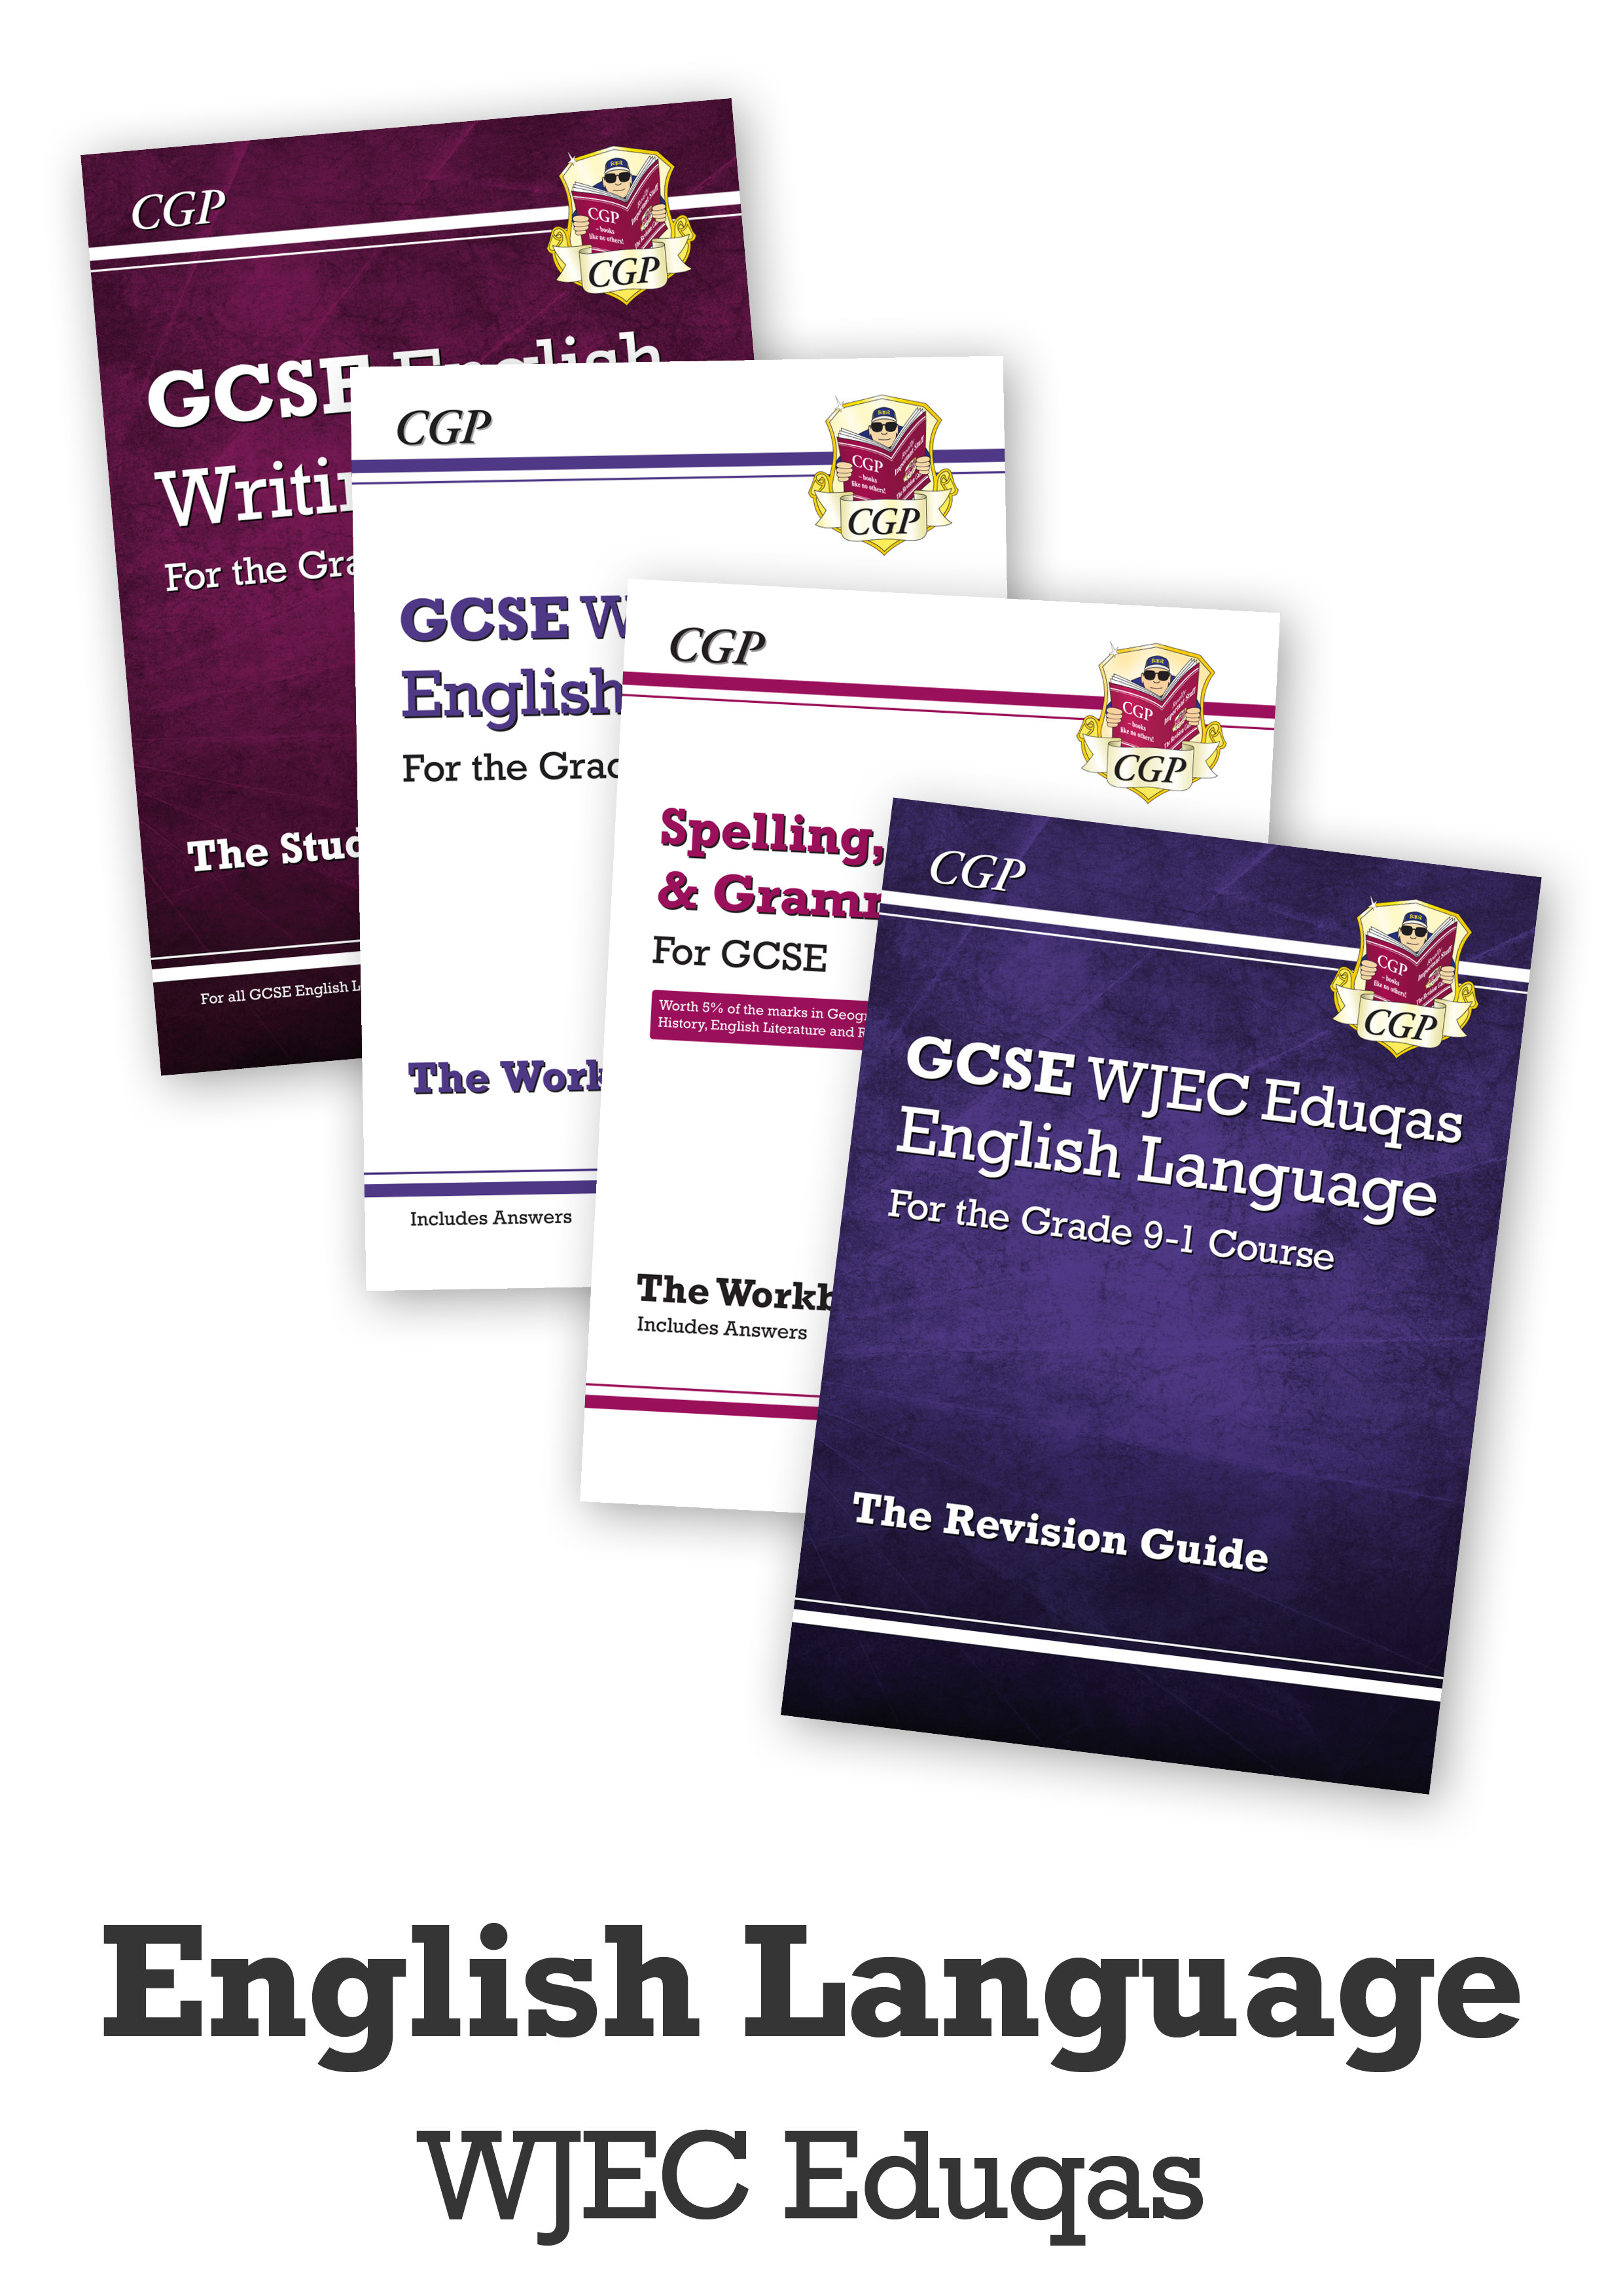 ENWCUB41 - GCSE Catch-Up Essentials Bundle: WJEC Eduqas English Language